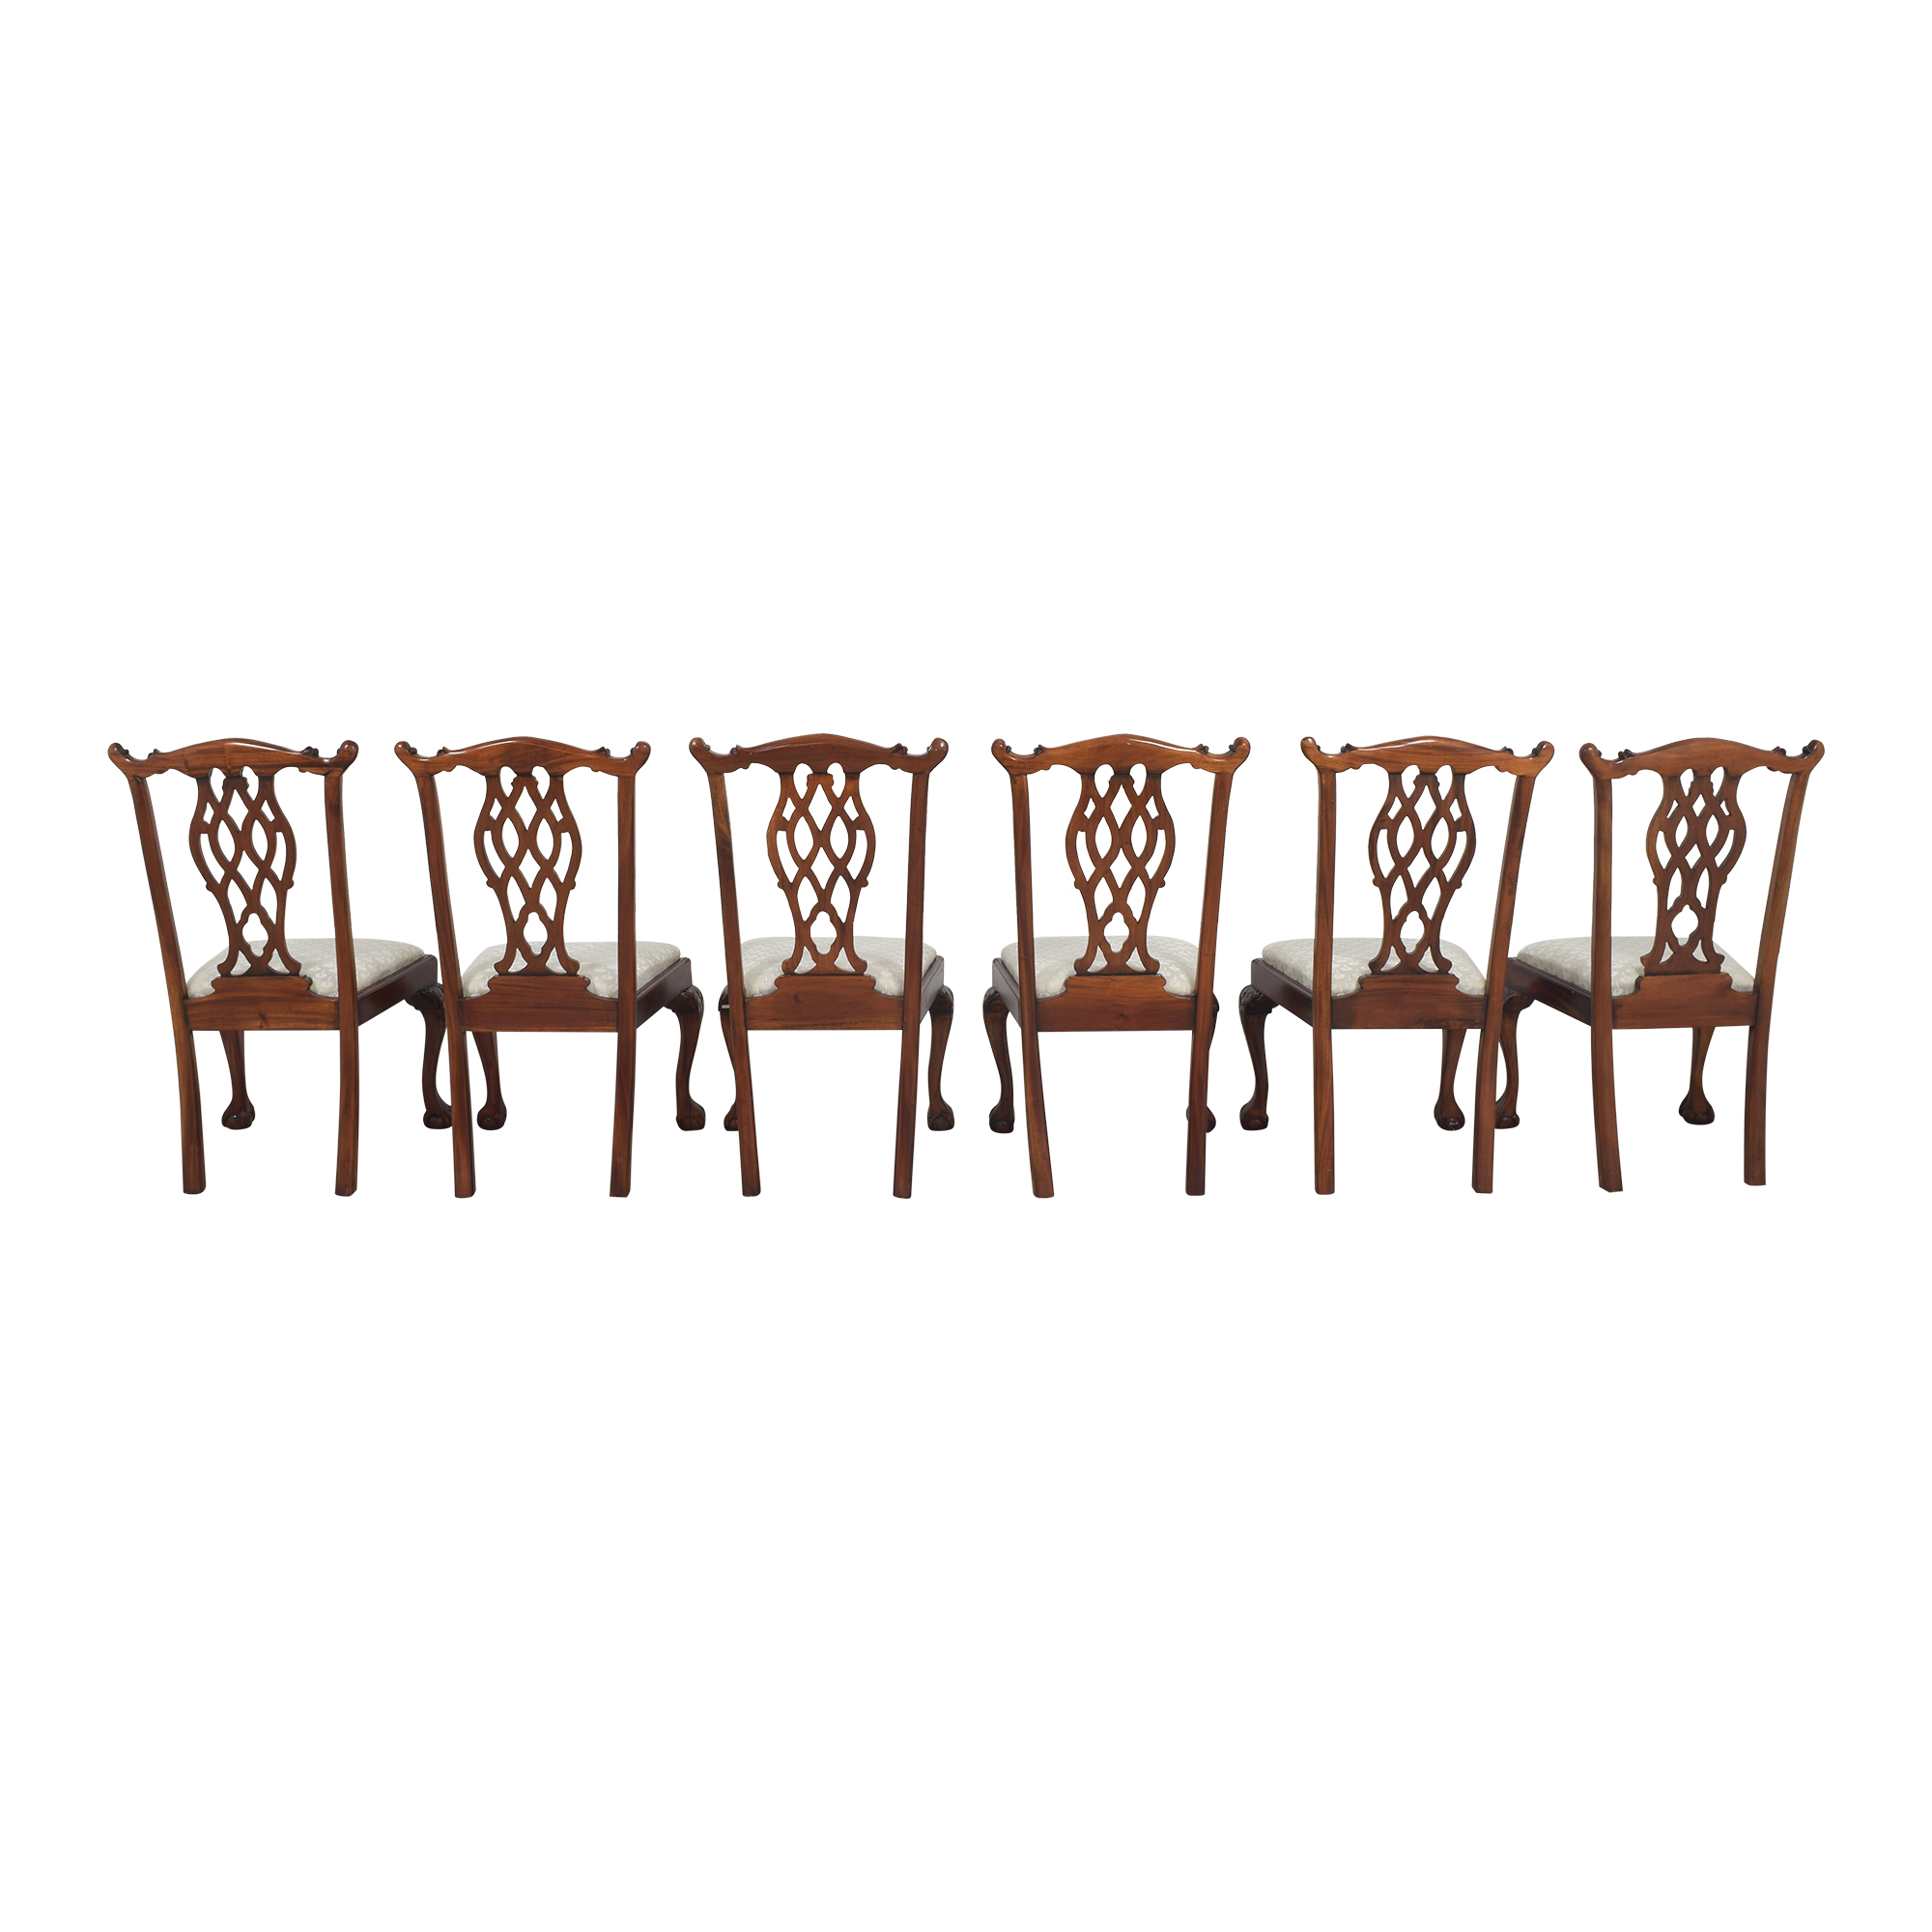 Upholstered Dining Chairs brown and ivory